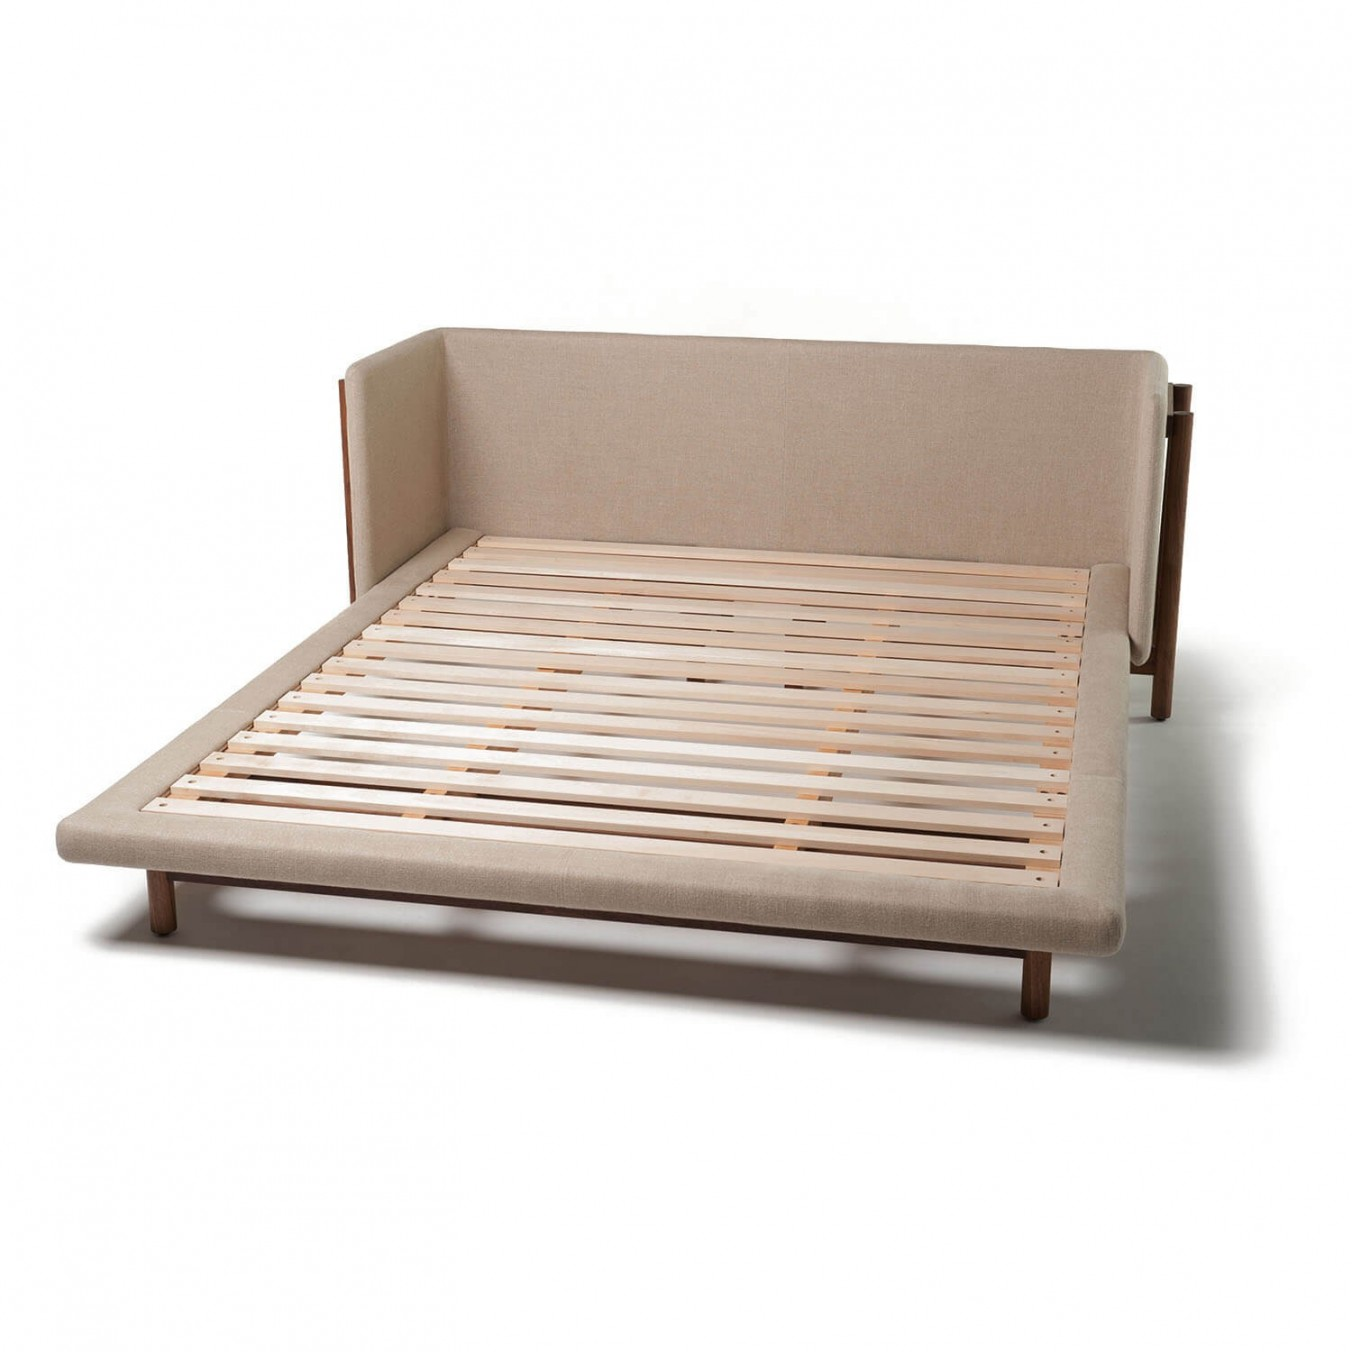 FRAME BED WITH ARMS